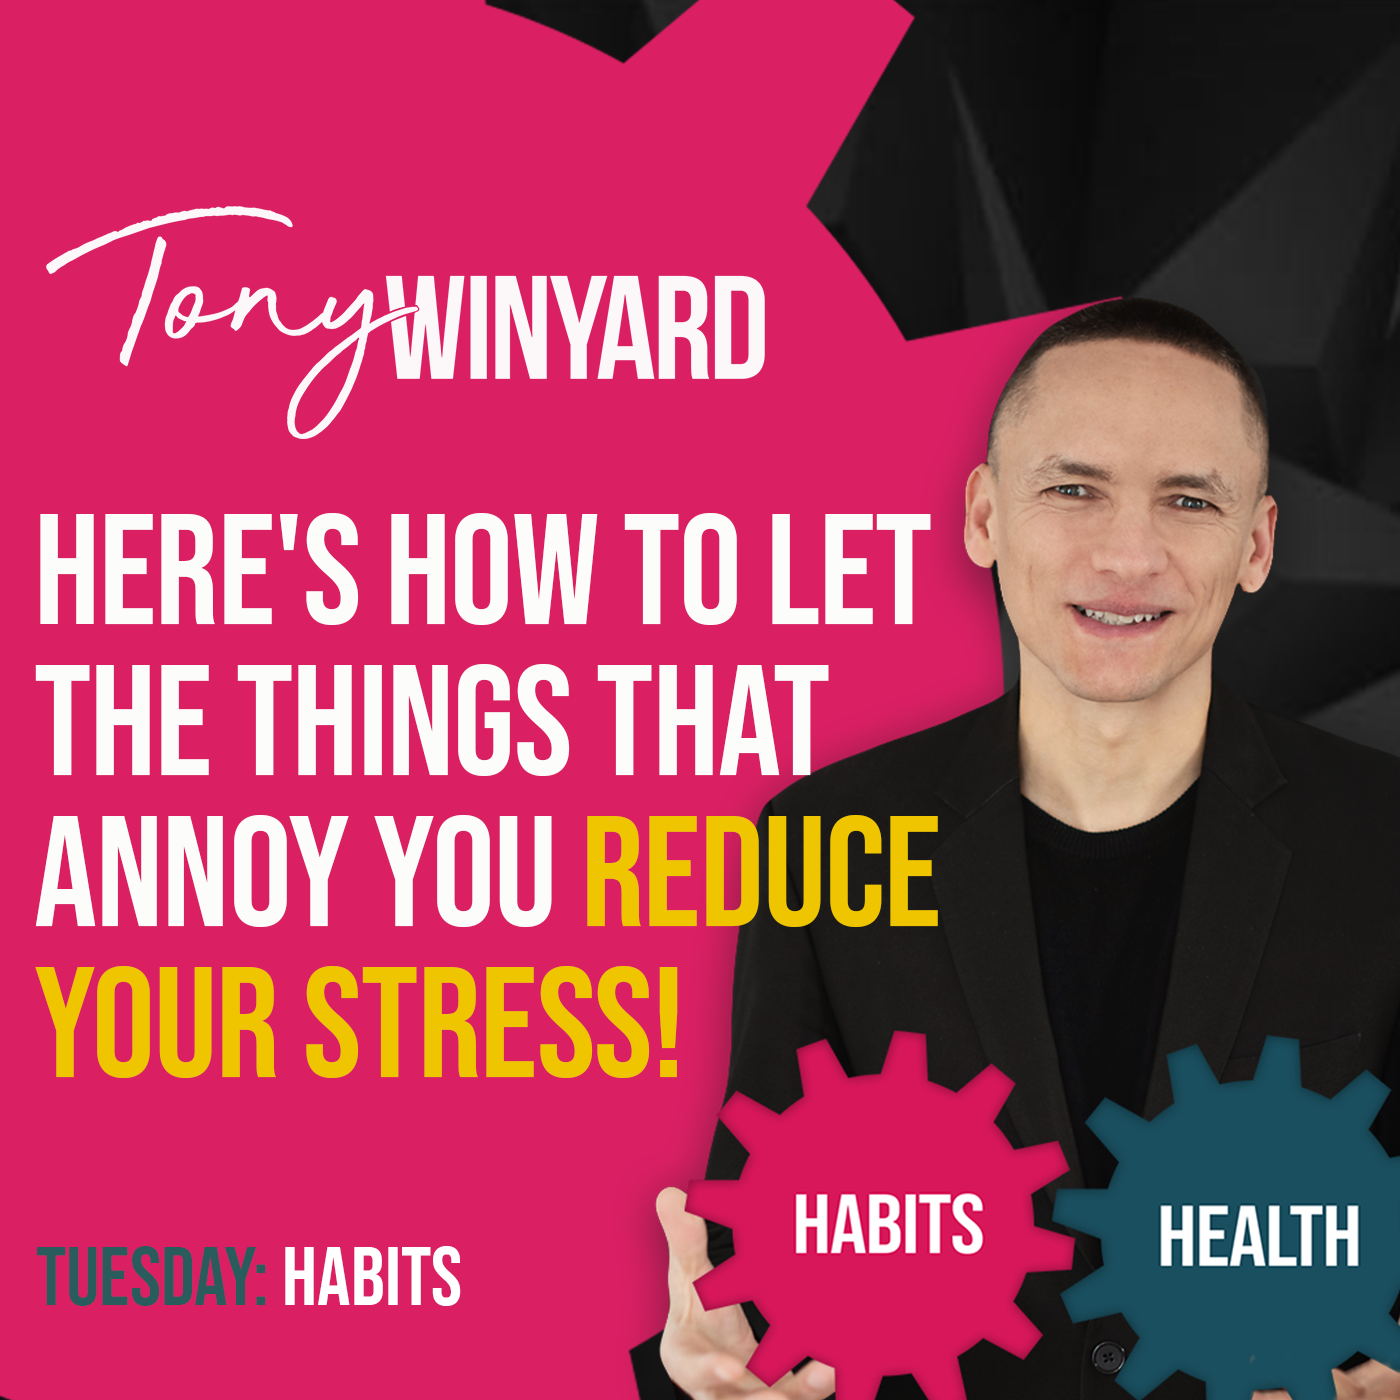 Here's how to let the things that annoy you reduce your stress!